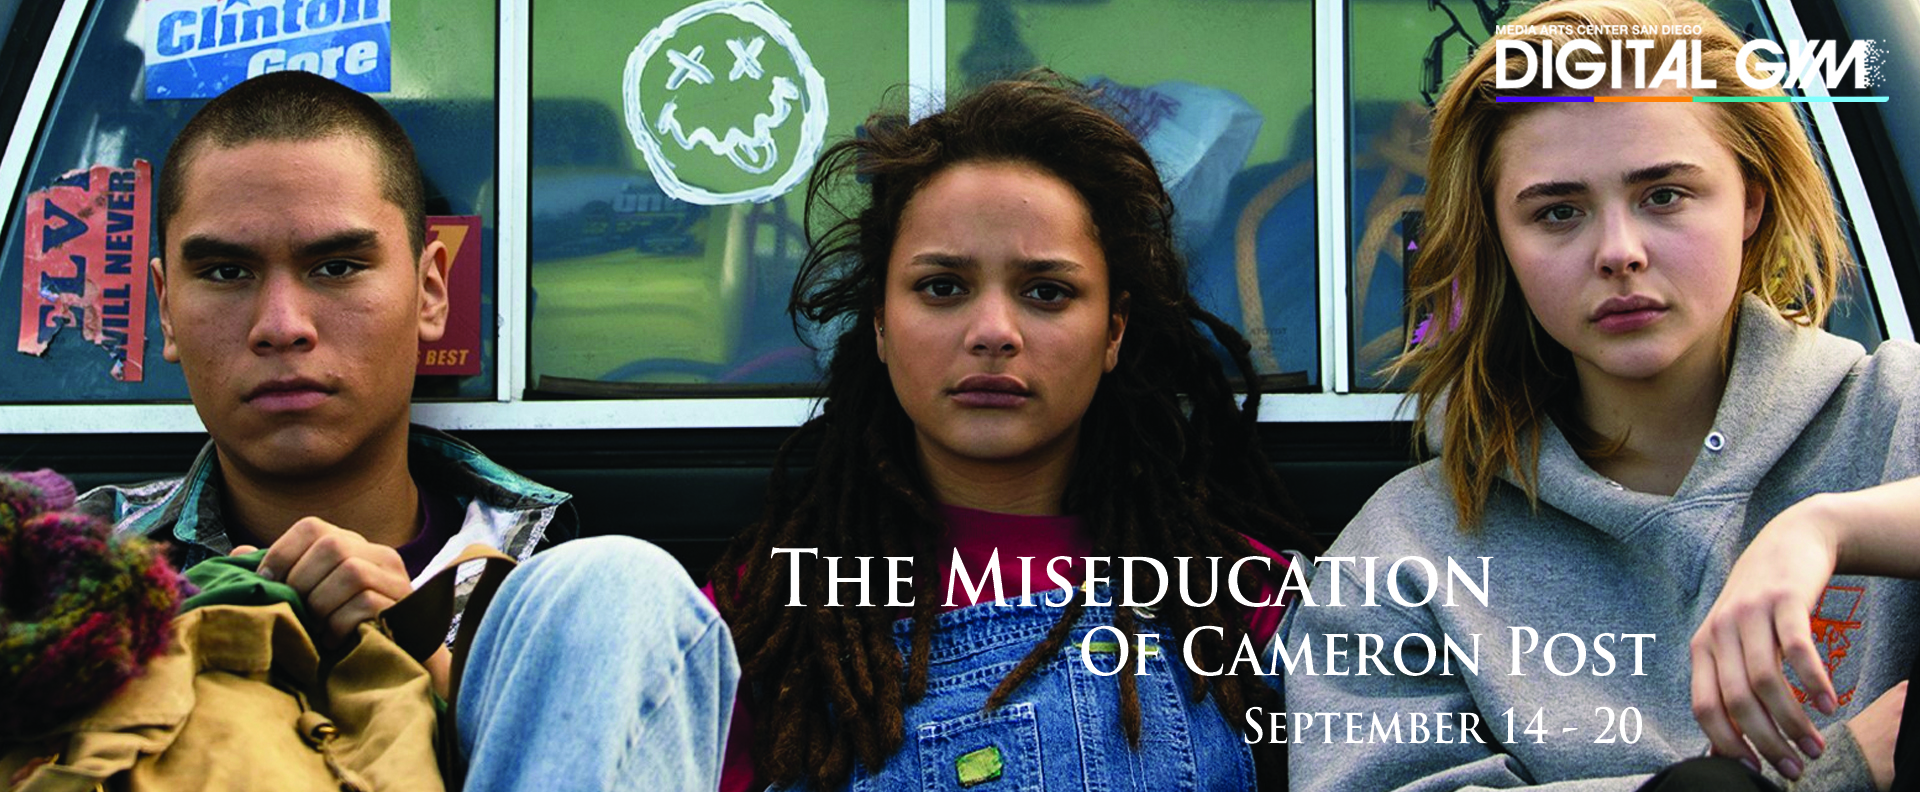 The Miseducation Of Cameron Post (September 14 – 20)